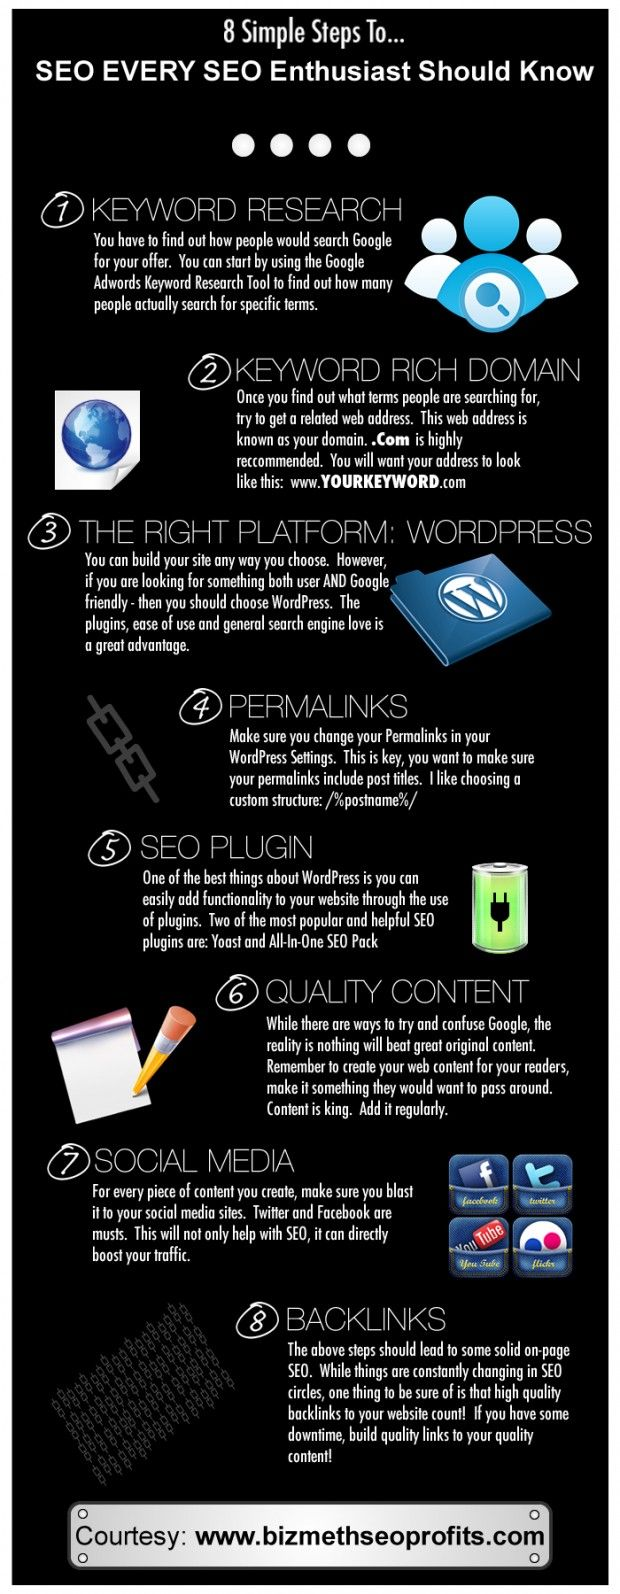 http://dayinthelifeofoblivion.blogspot.com 8 Simple SEO Steps Every #SEO Enthusiast Should Know #infographic (repinned by @Ricardo Llera)